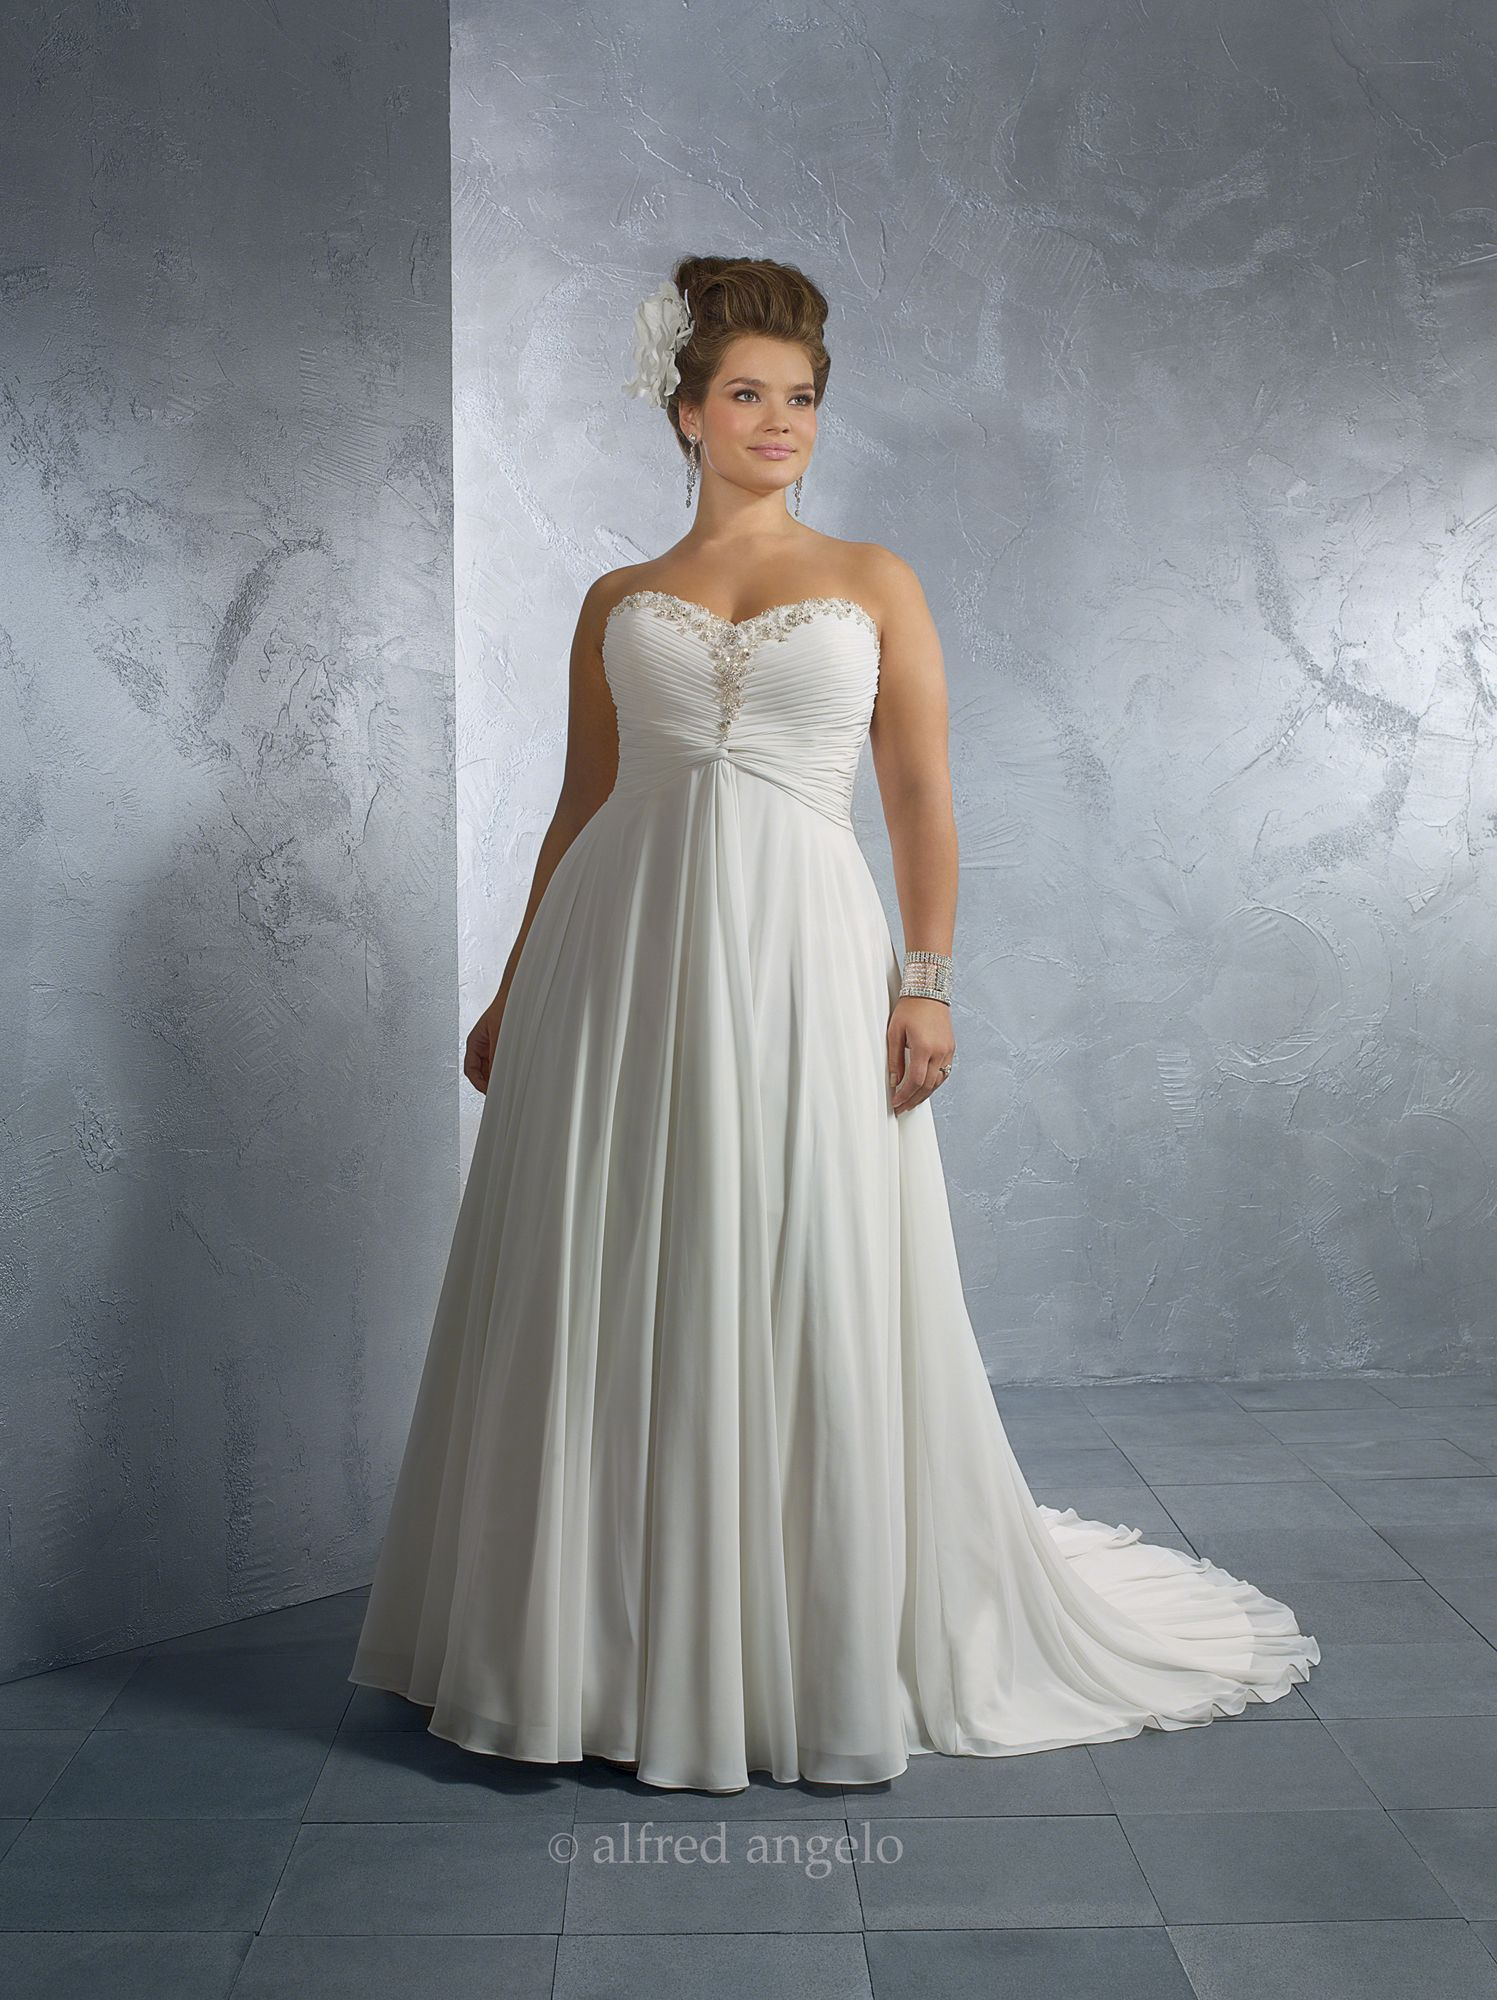 My fantasy wedding dress sizeww hopefully i can lose some